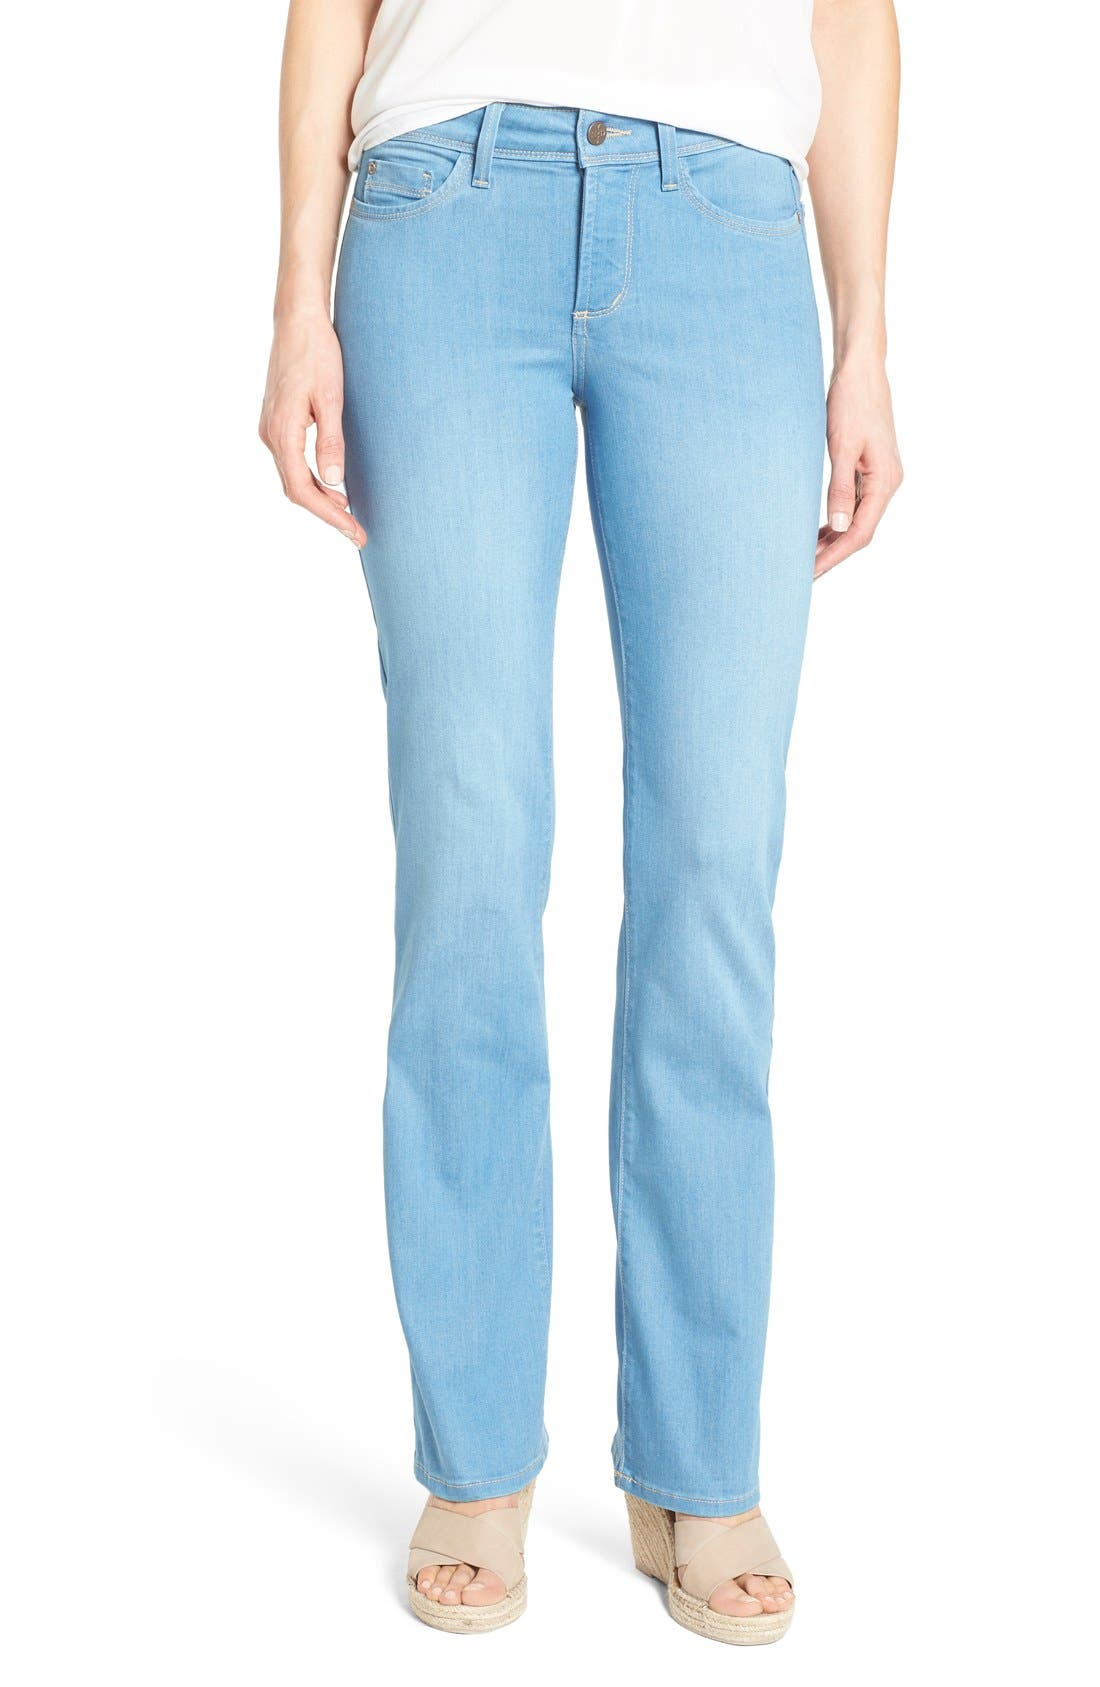 'Barbara' Stretch Bootcut Jeans,                         Main,                         color, Palm Bay